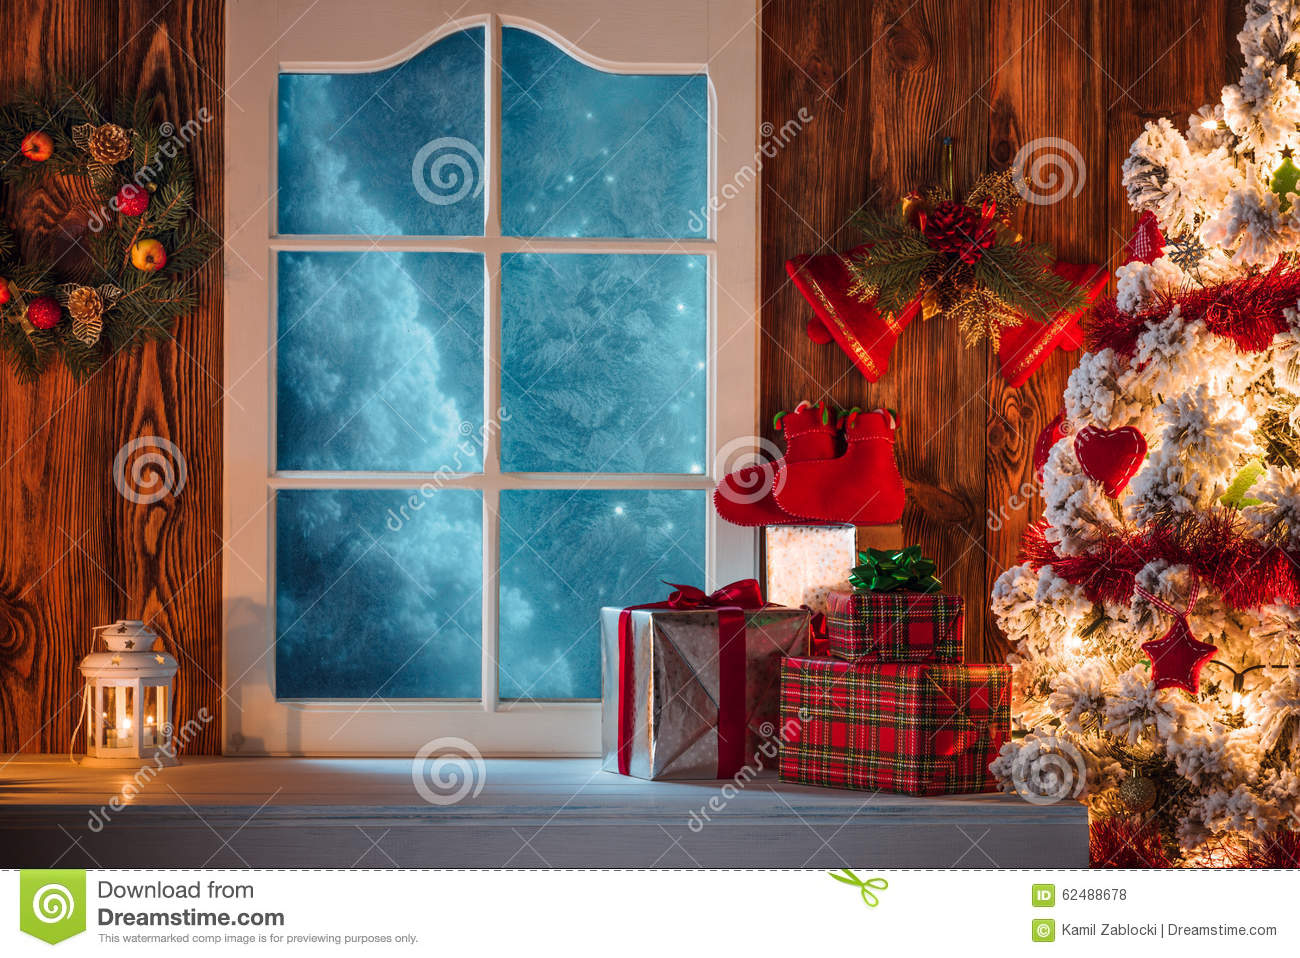 Christmas Scene With Tree Gifts And Frozen Window Stock Photo ...